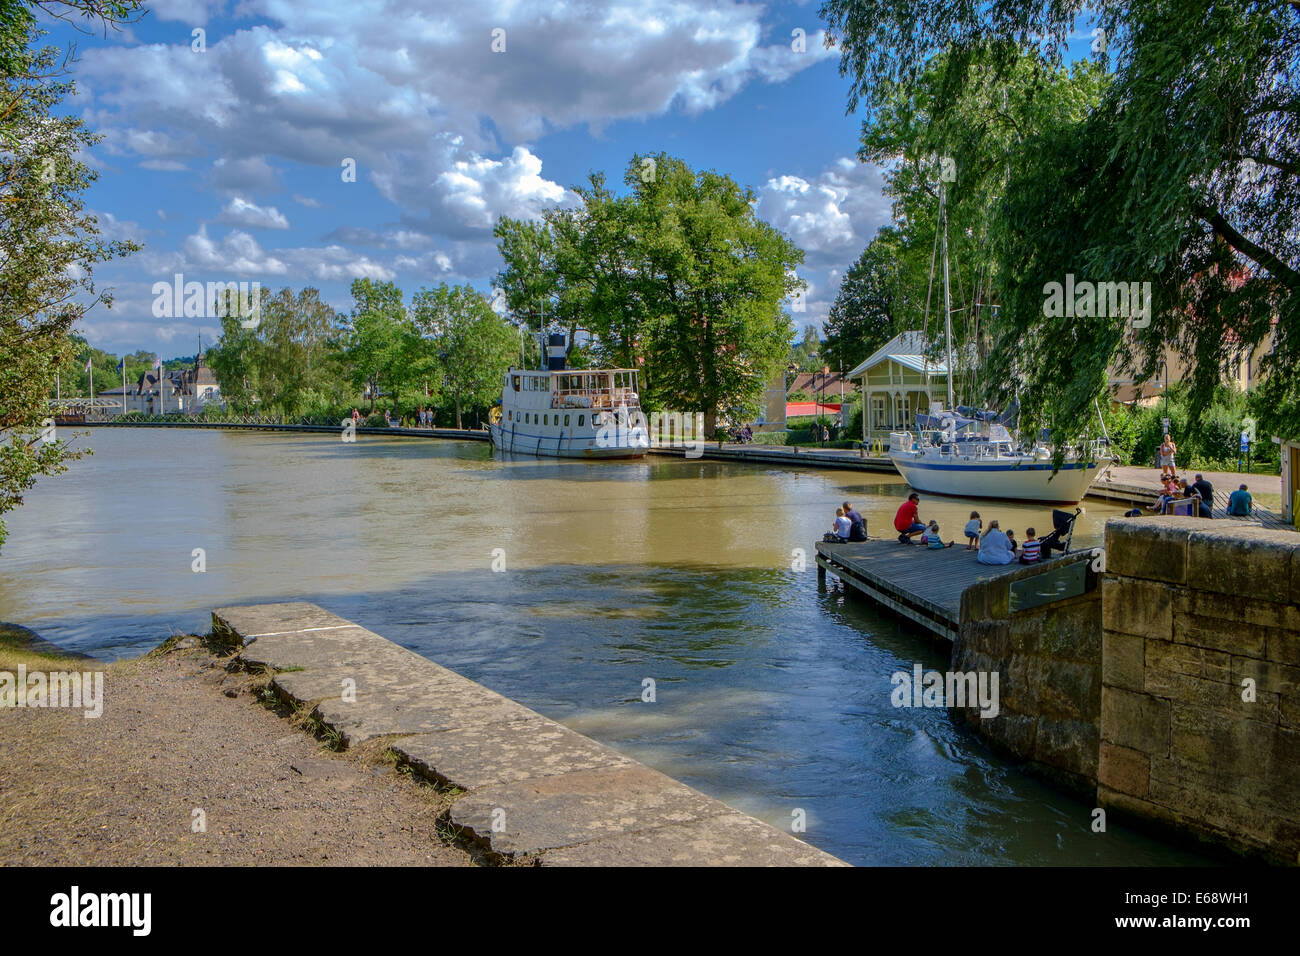 Tourists relax at a lock on Gota Canal in Soderkoping, Sweden. - Stock Image